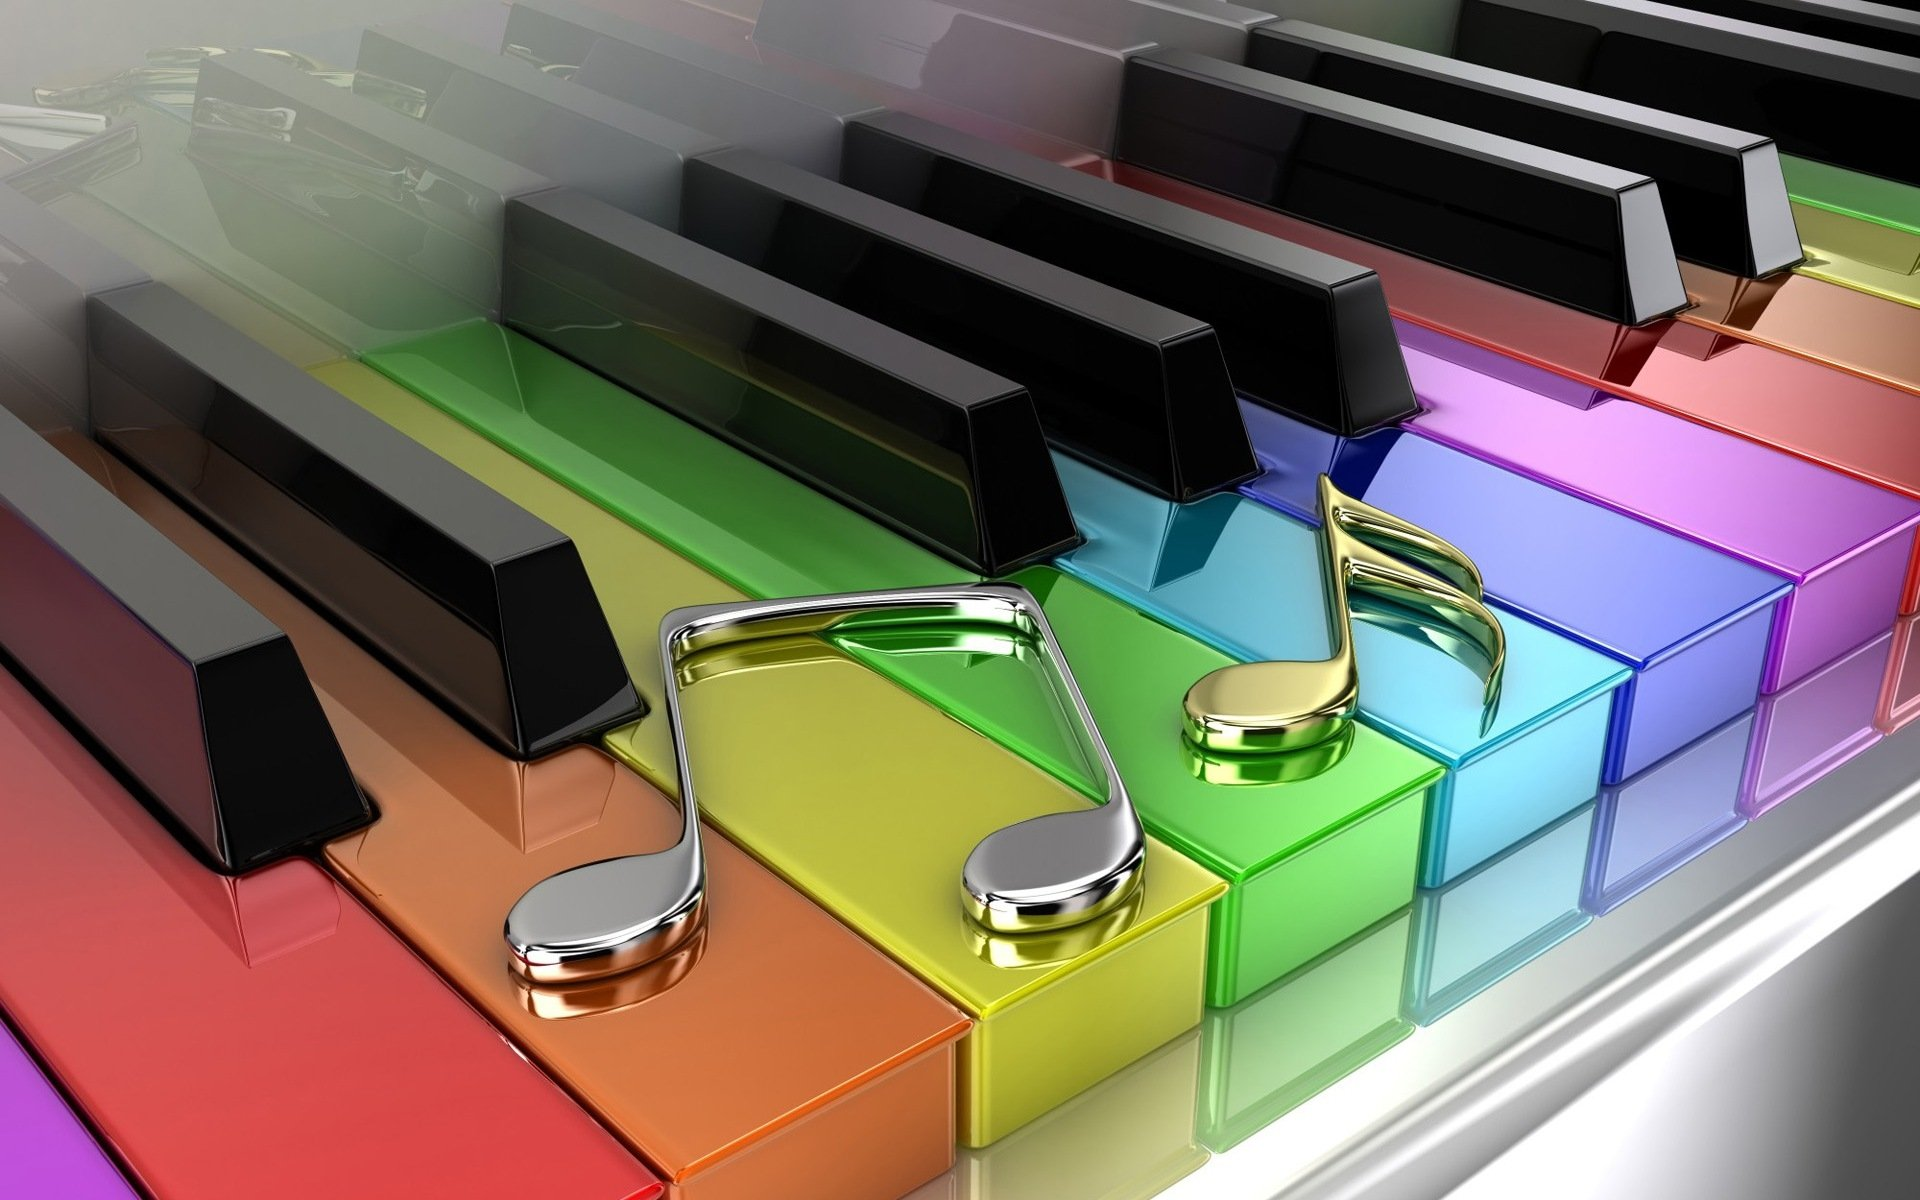 Rainbow colored piano keys hd wallpaper background image - Cool piano backgrounds ...